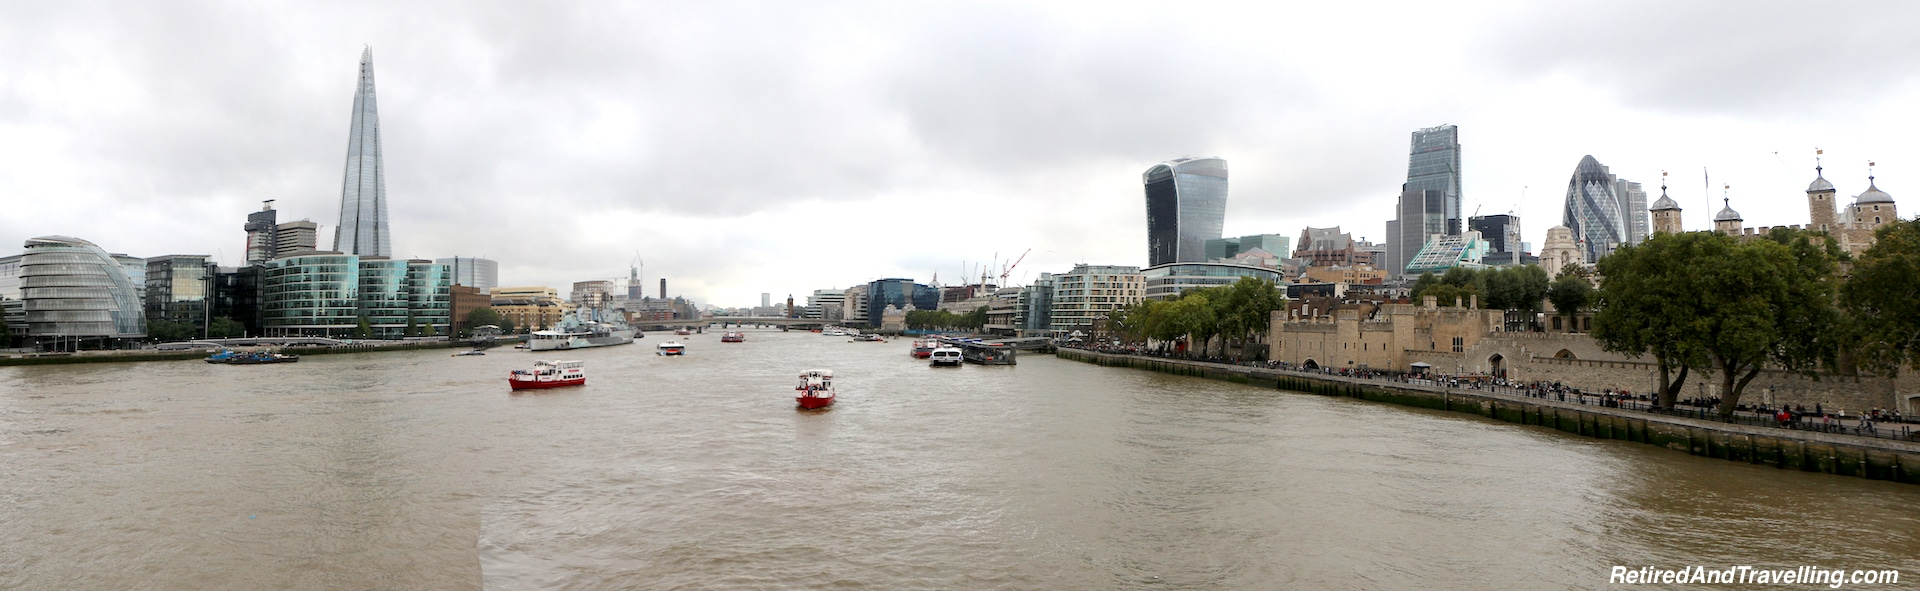 London Tower Bridge View - Tips For Visiting London.jpg